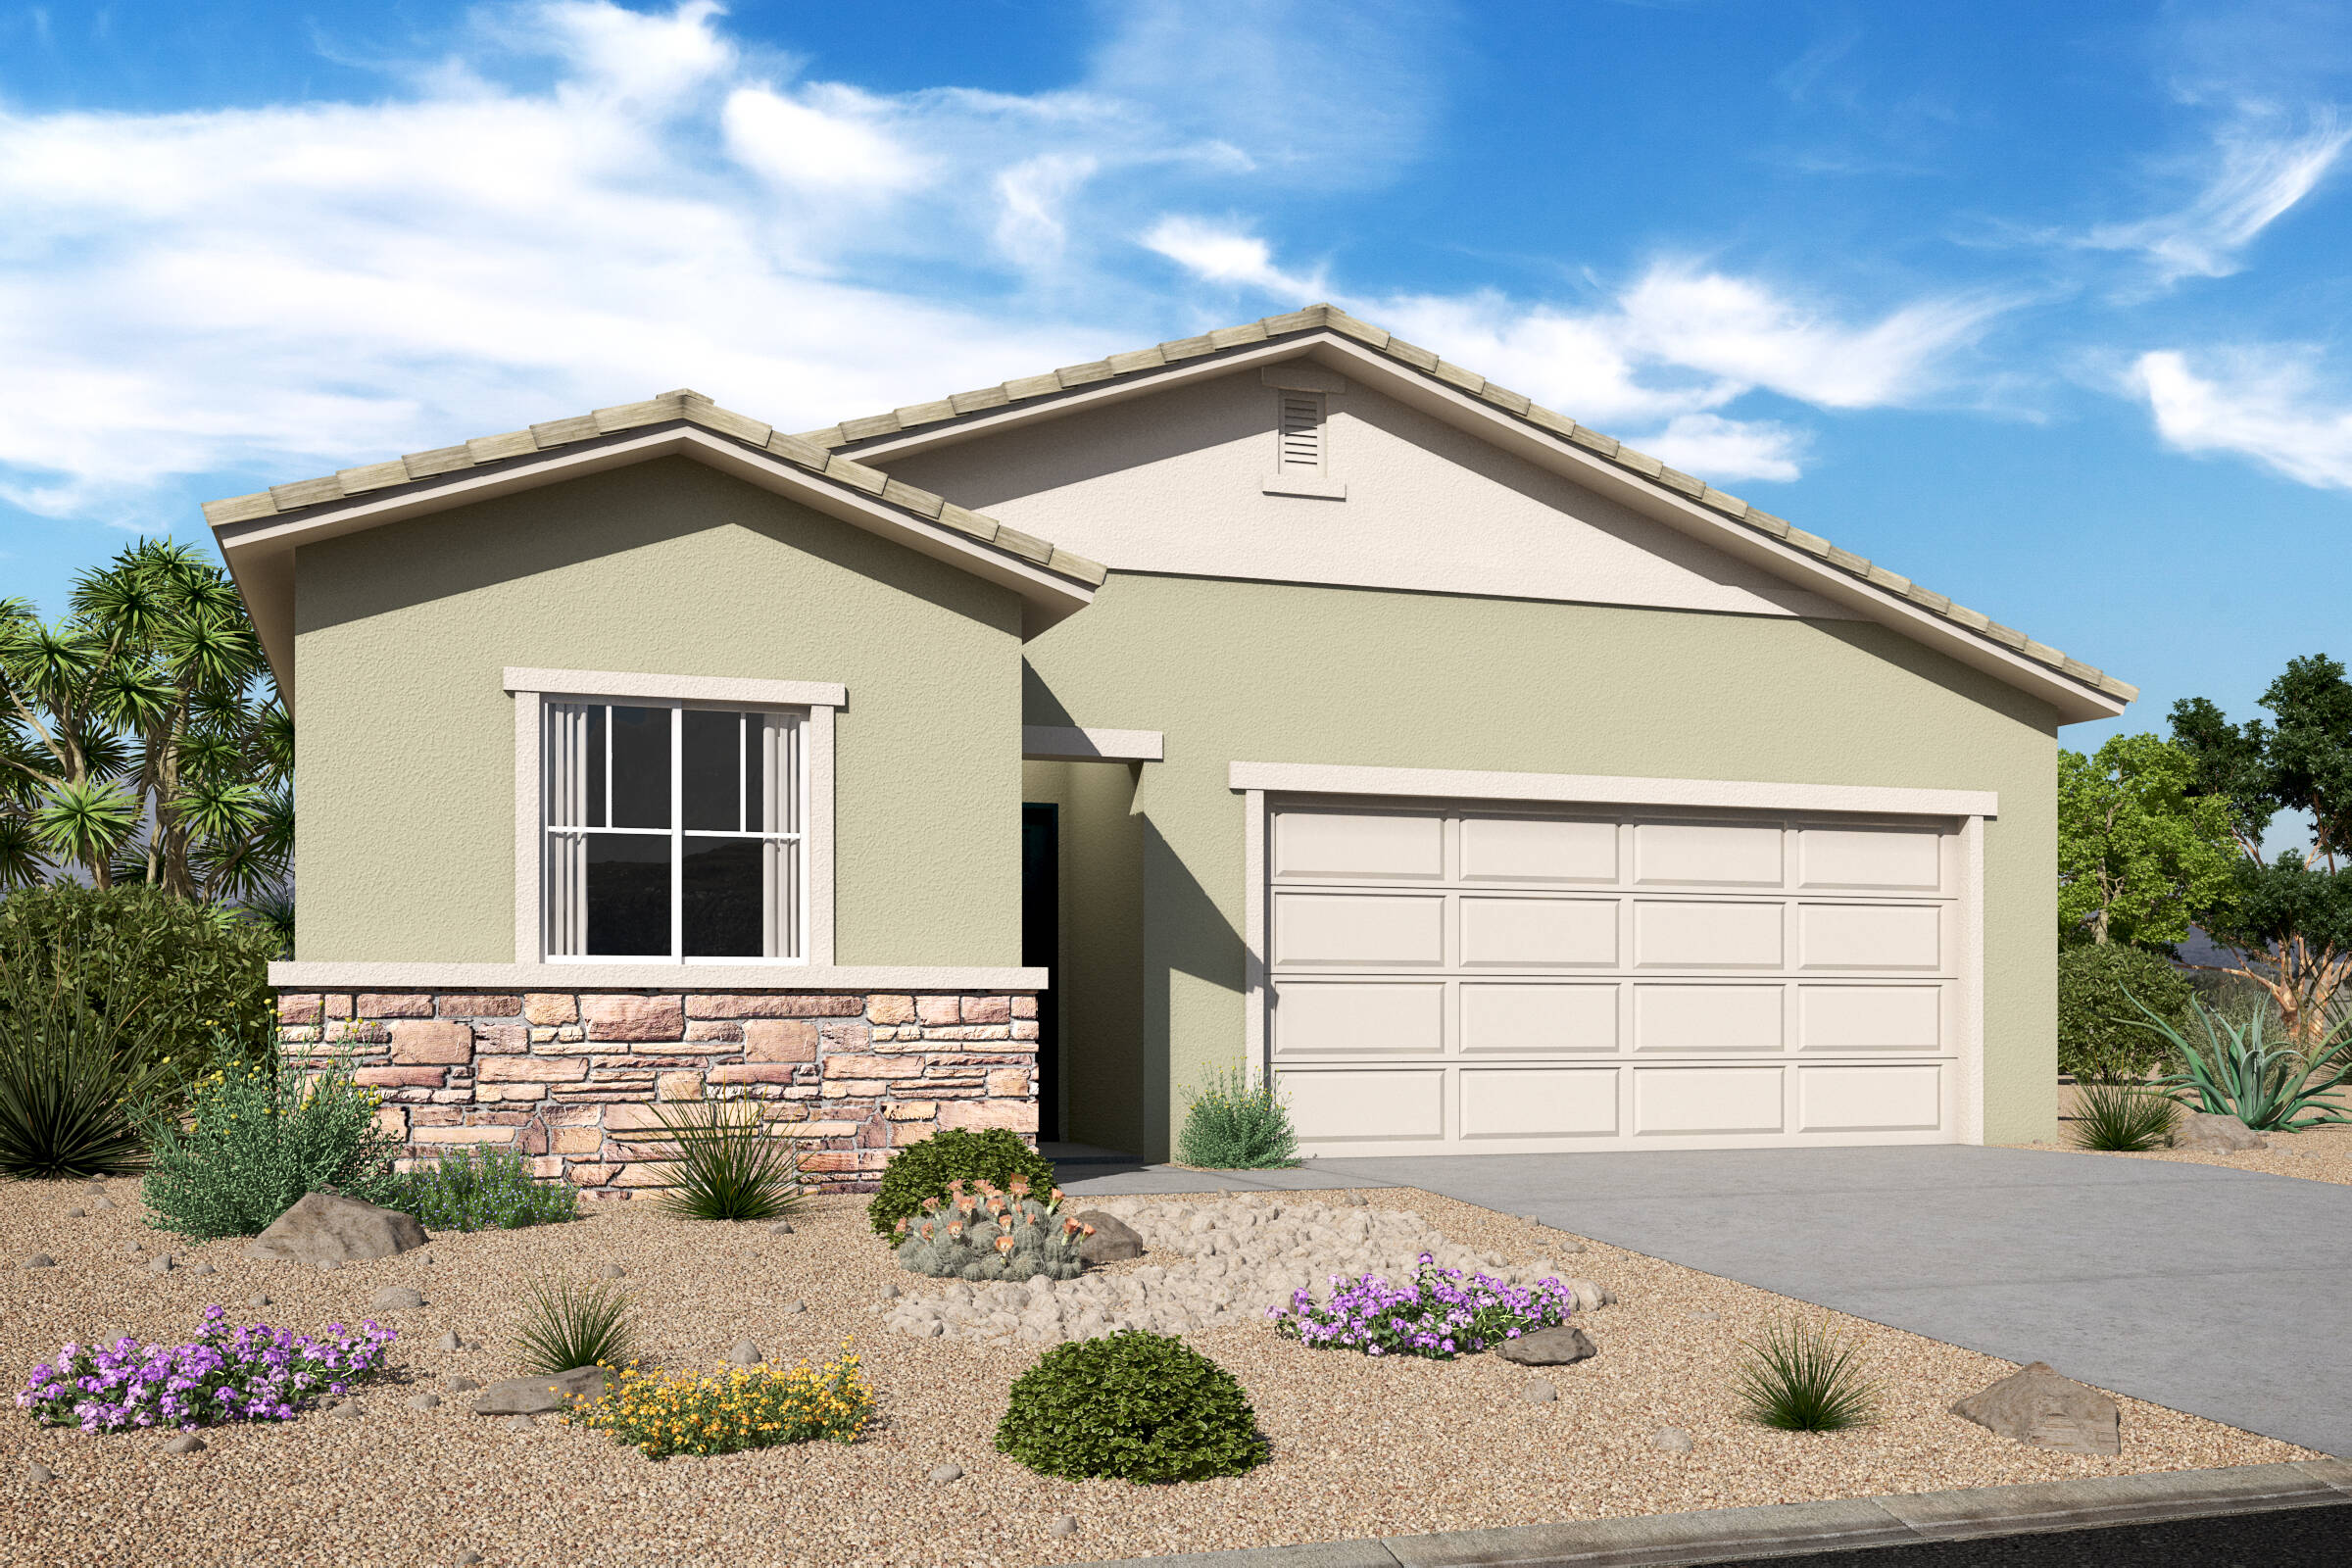 3575 celebration e craftsman new homes aspire at montana vista